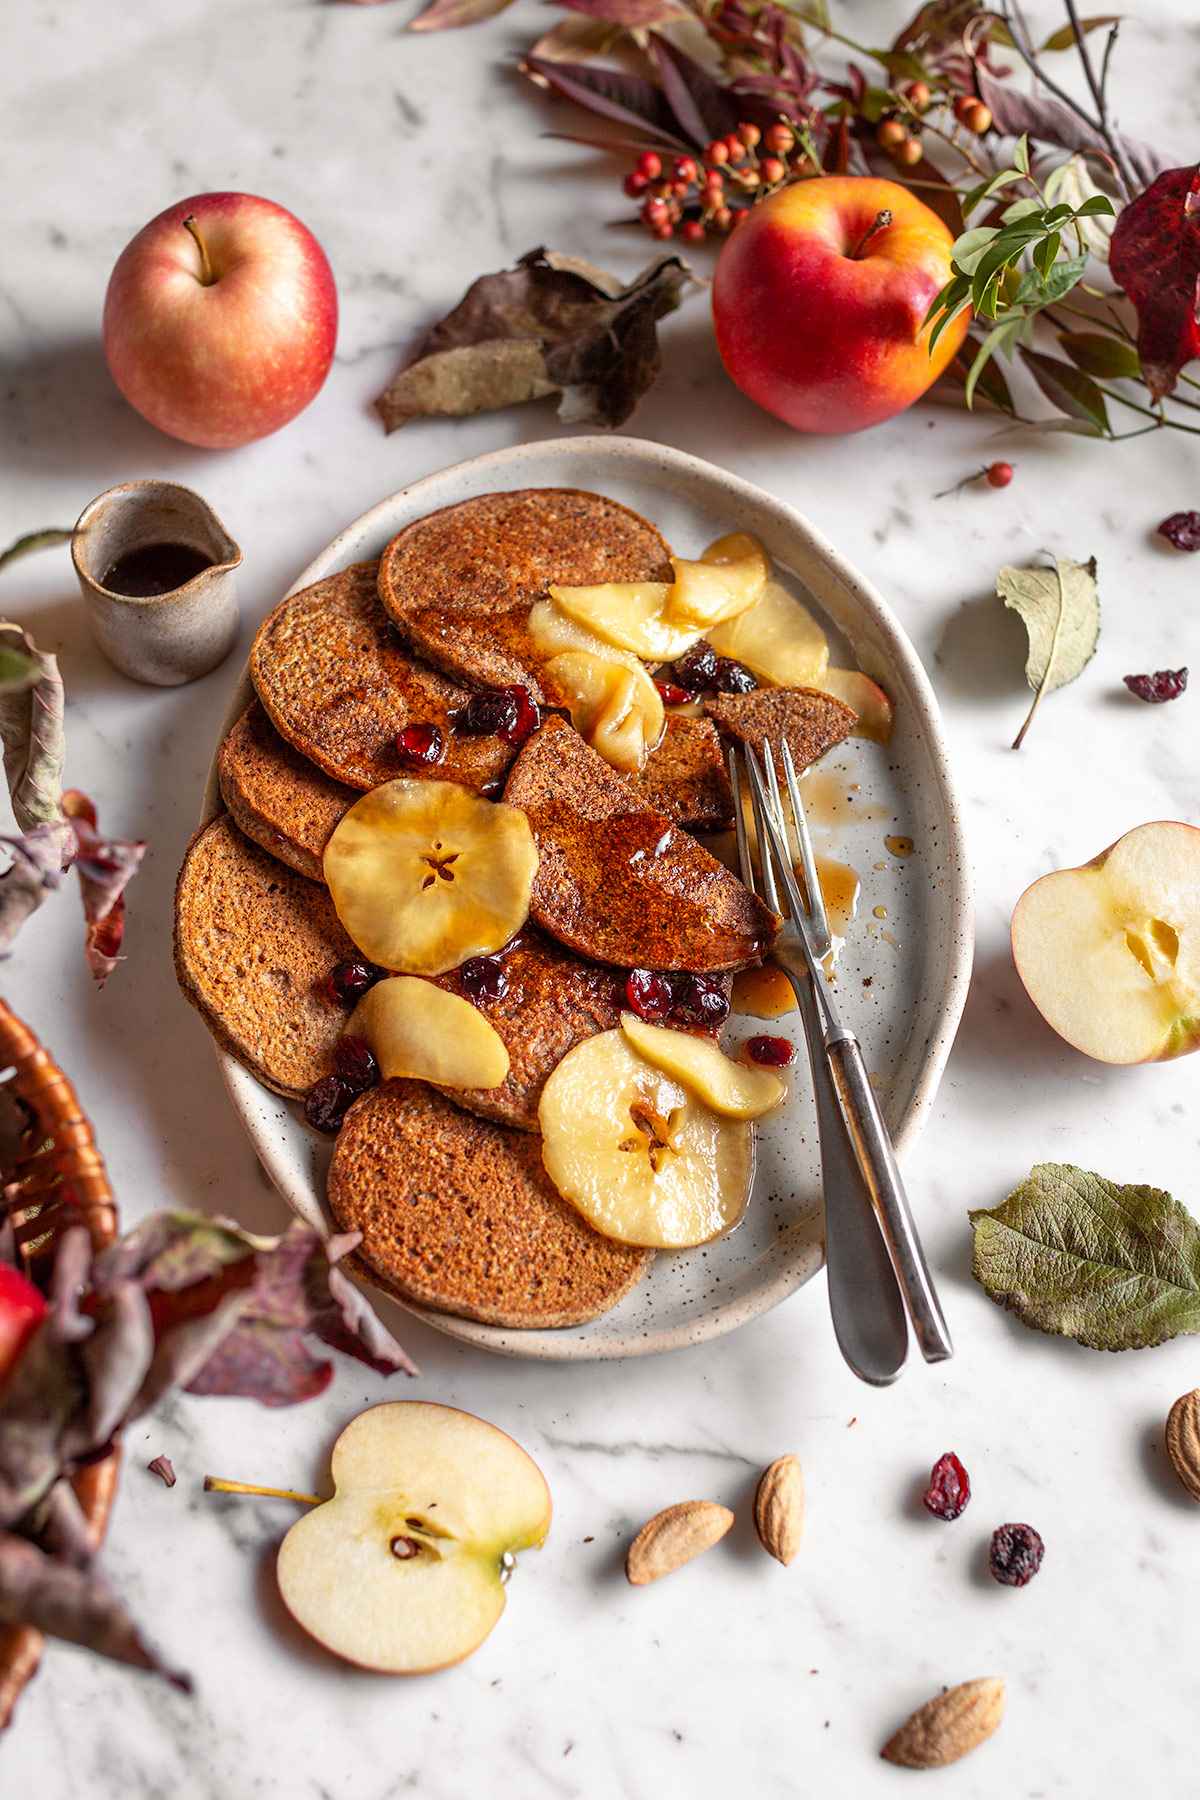 gluten-free VEGAN APPLE BUCKWHEAT PANCAKES recipe with caramelized apples and cranberries ricetta PANCAKES VEGAN di GRANO SARACENO e MELE SENZA GLUTINE con mele caramellate cranberry e datteri